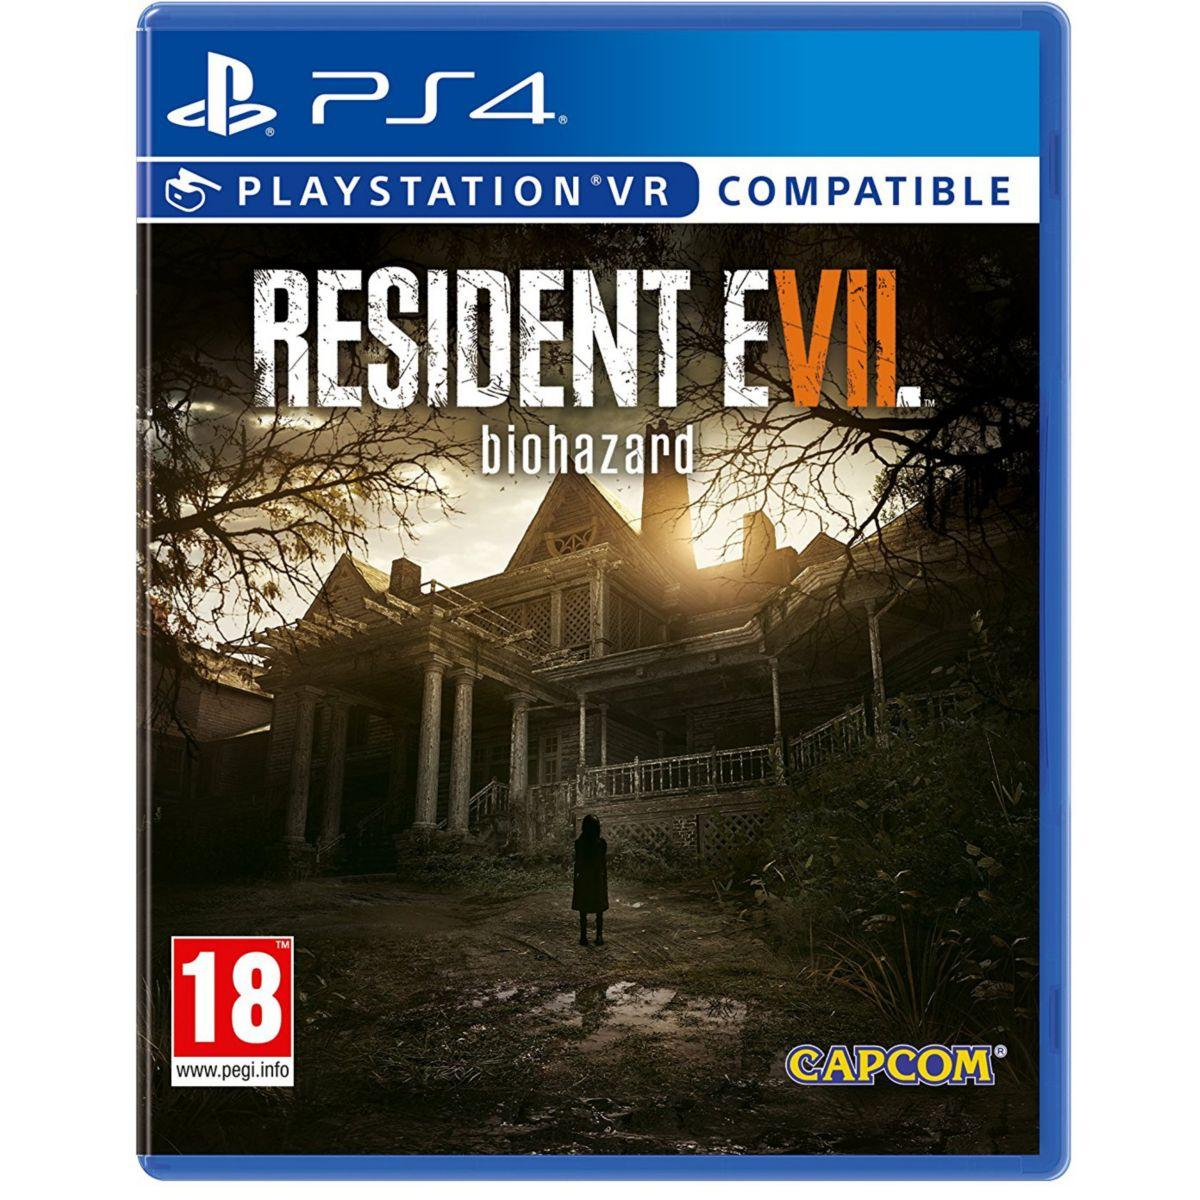 Jeu ps4 capcom resident evil 7 biohazard (photo)